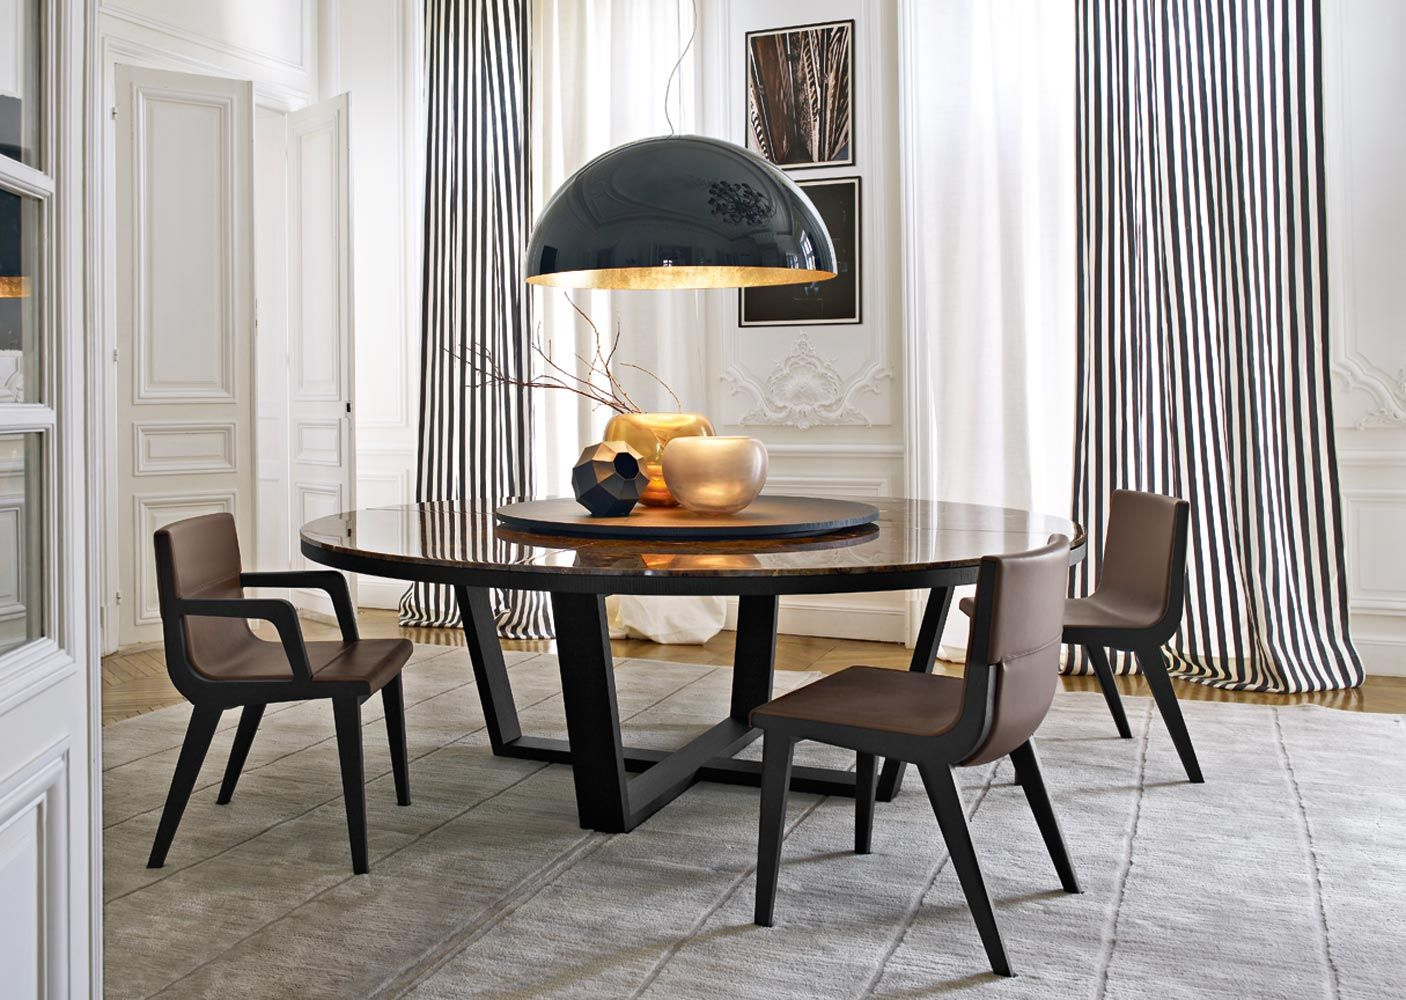 Round dining table Designed by Antonio Citterio for contemporary dining room sets.